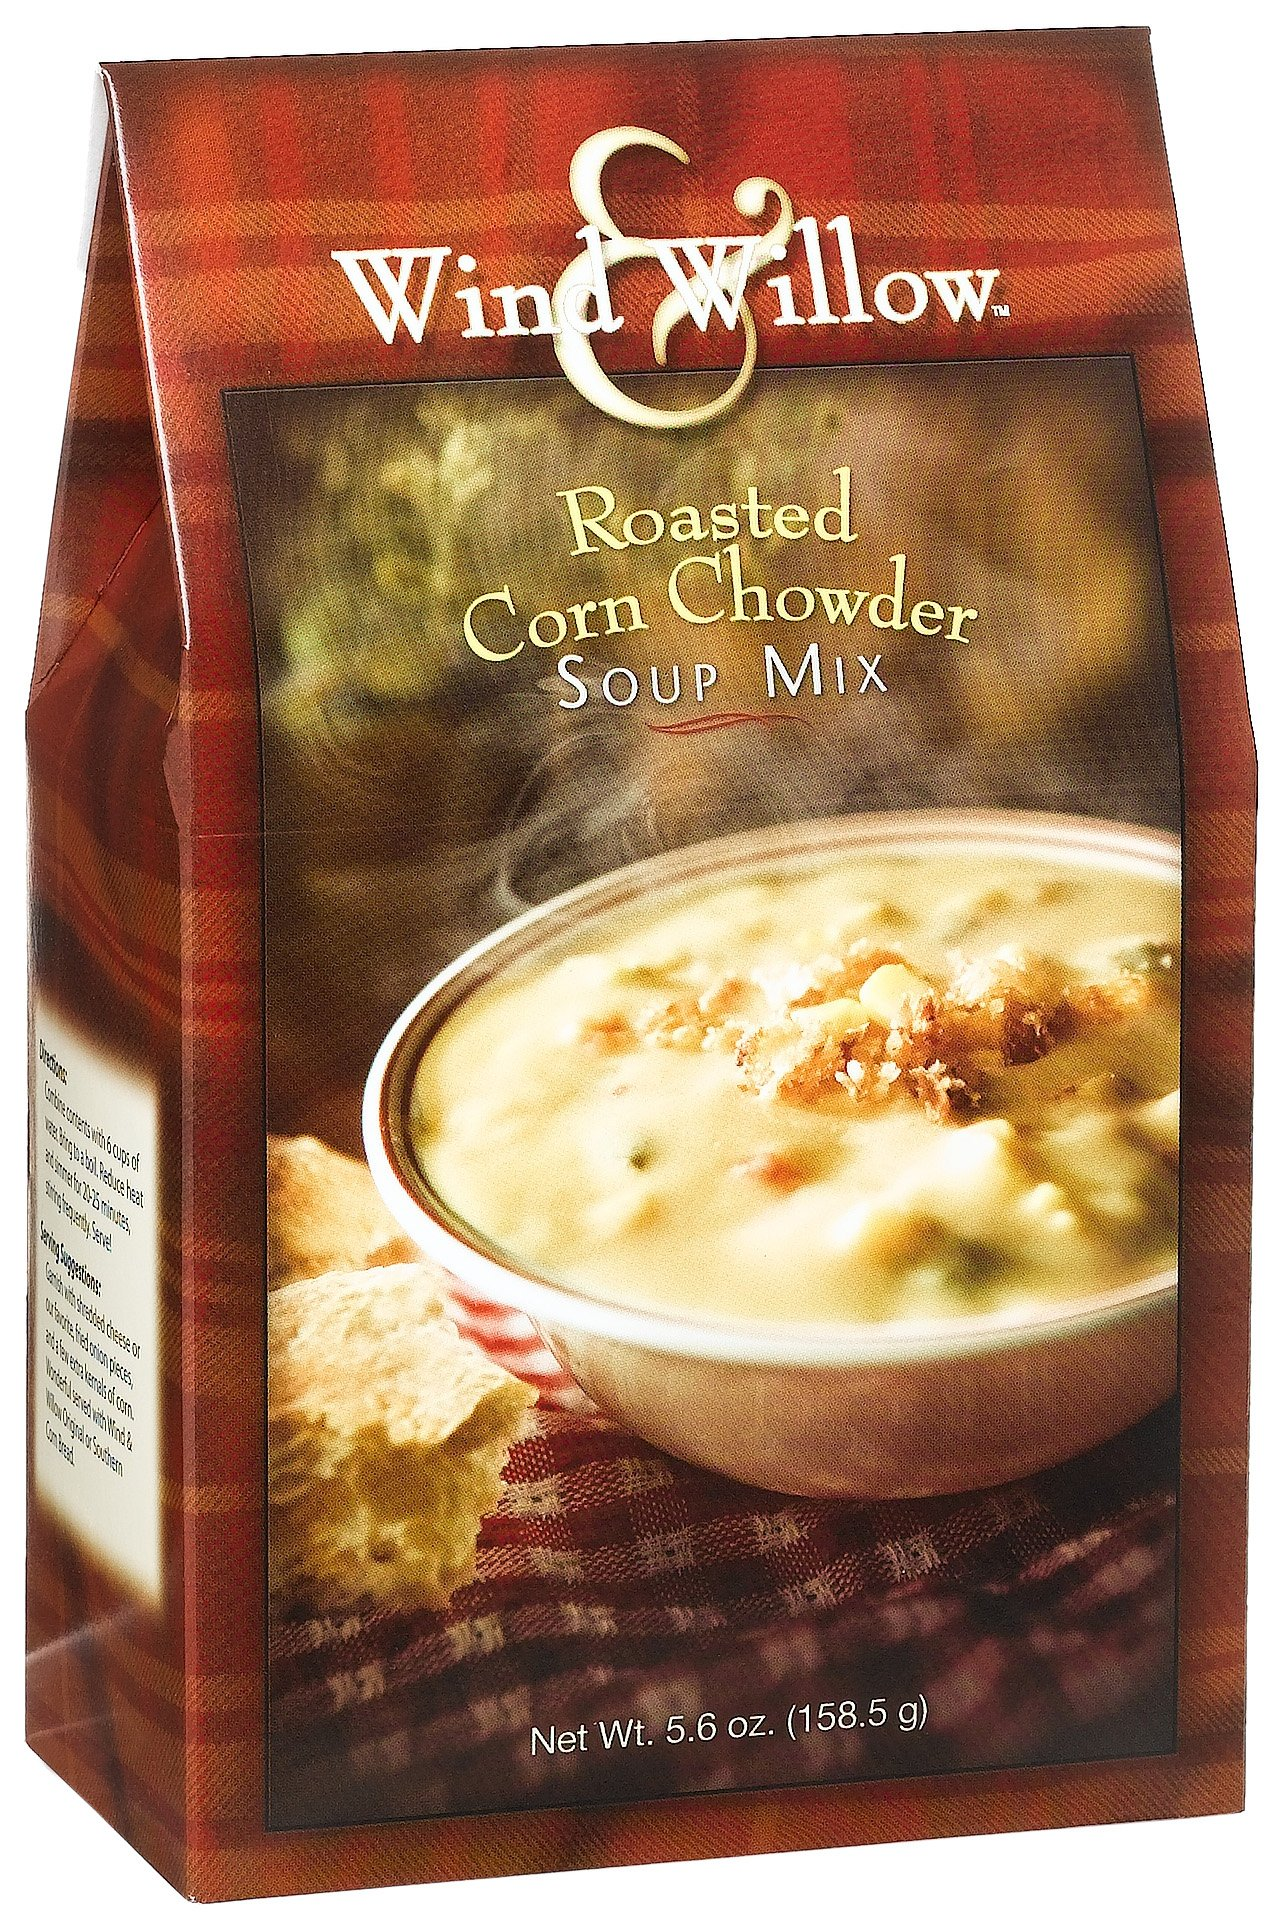 Wind & Willow Roasted Corn Chowder Soup Mix, 5.6-Ounce Boxes (Pack of 4)